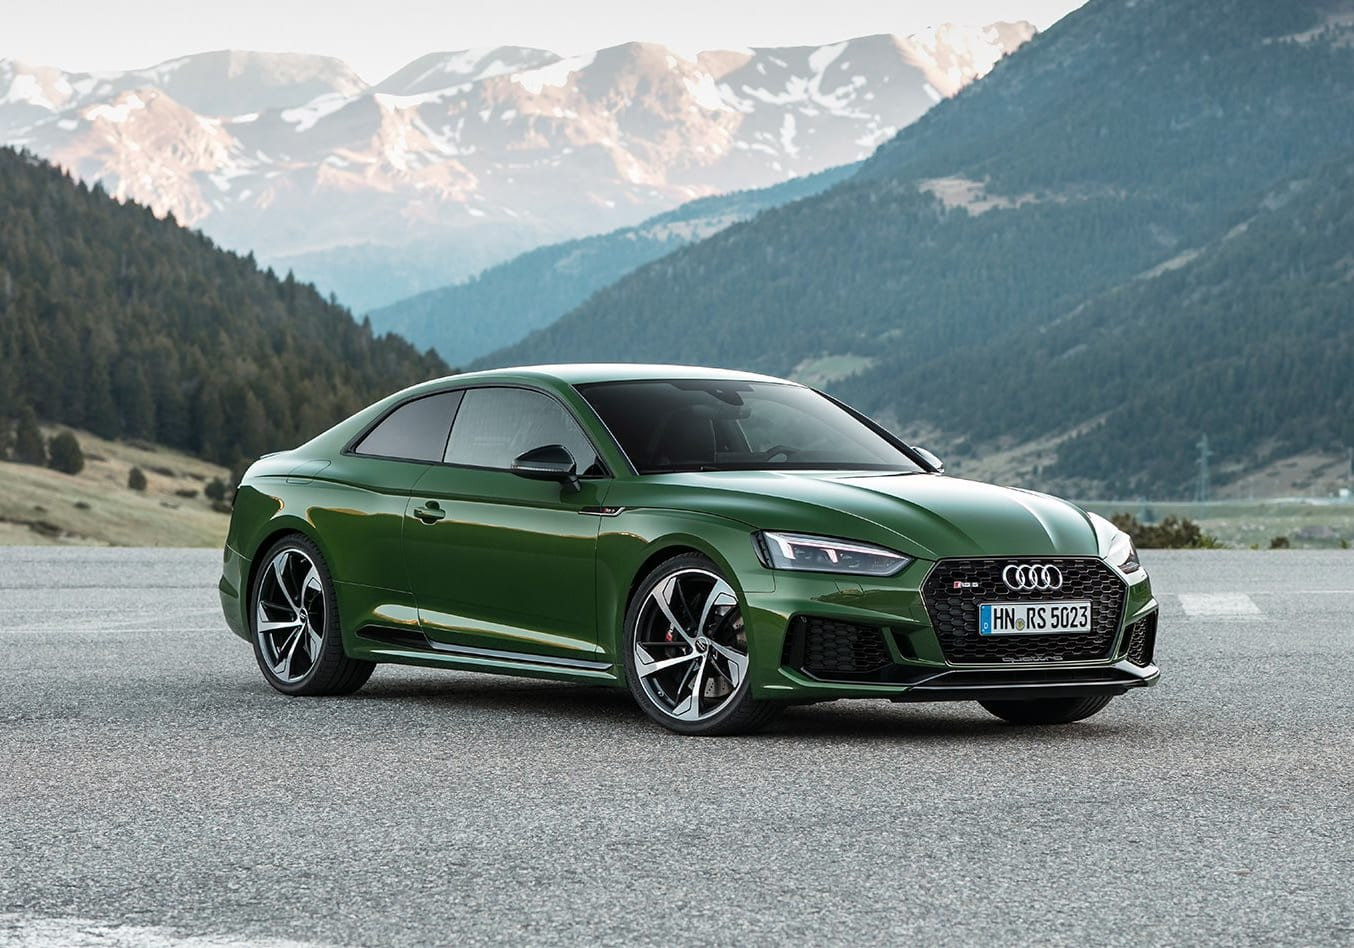 2018 Audi RS5 Coupe pricing and features